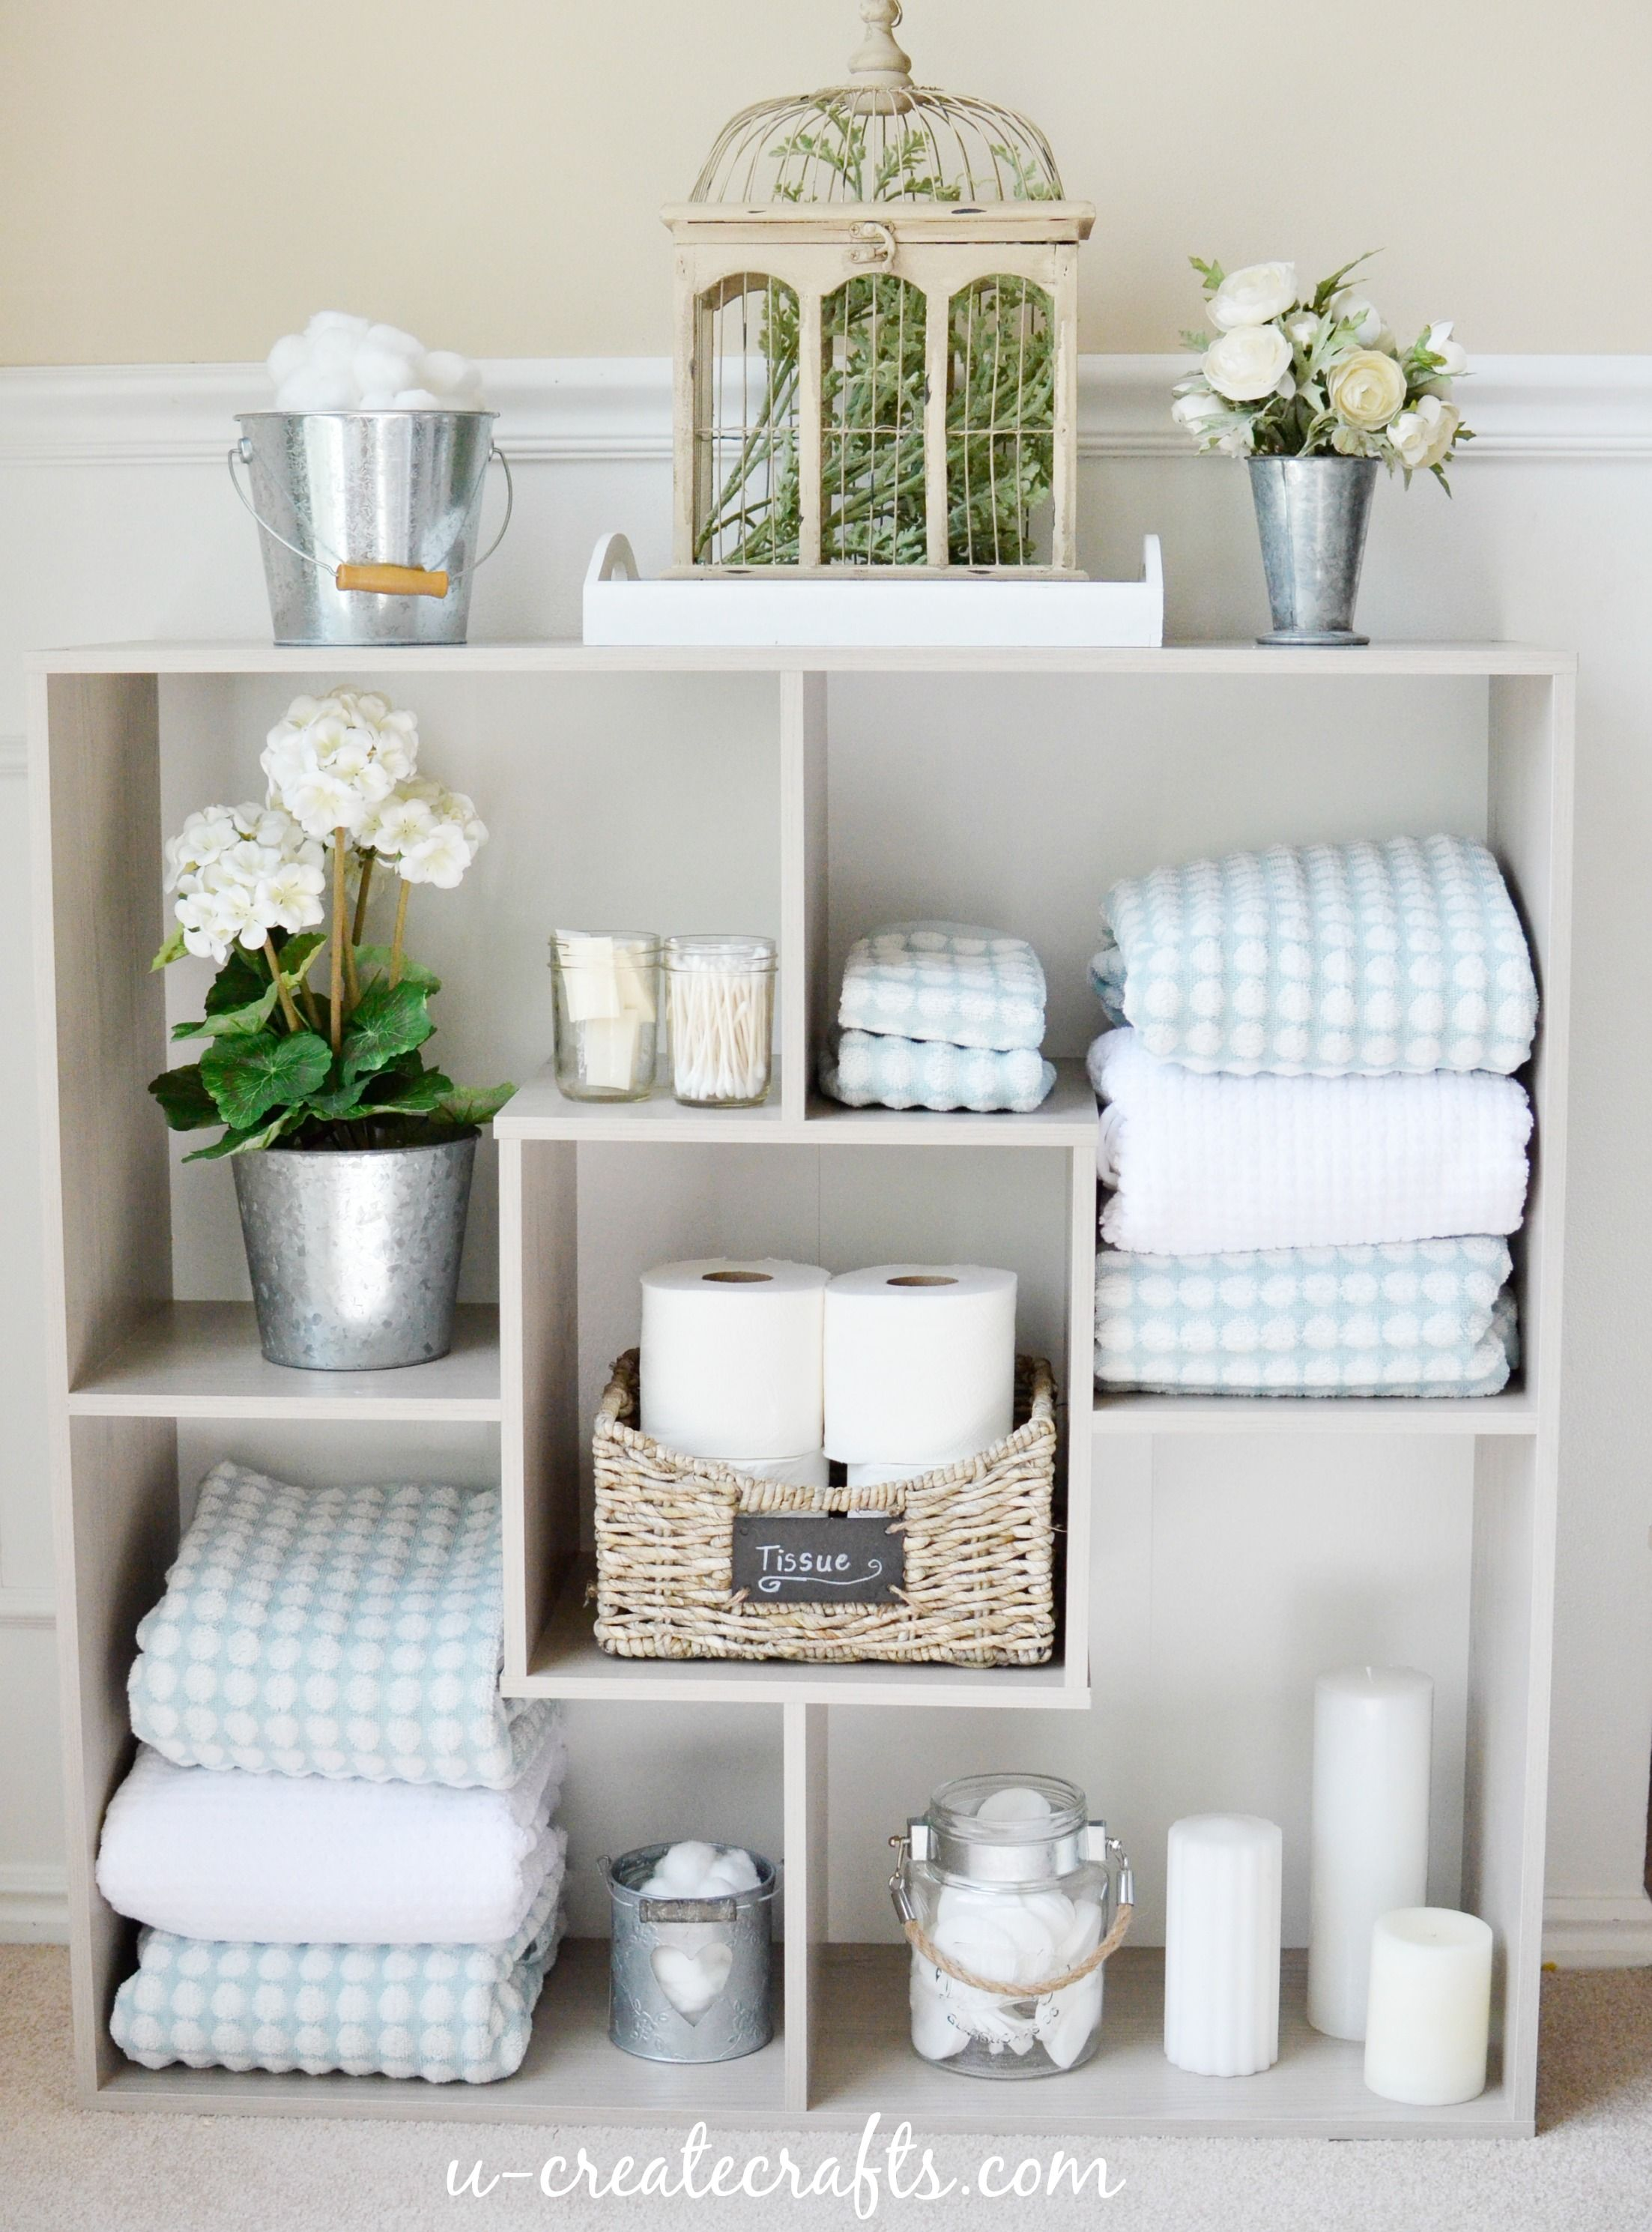 Best Sauder Bathroom Shelves Home Decor Bathroom Pinterest Toilets Towels And Love This This Month